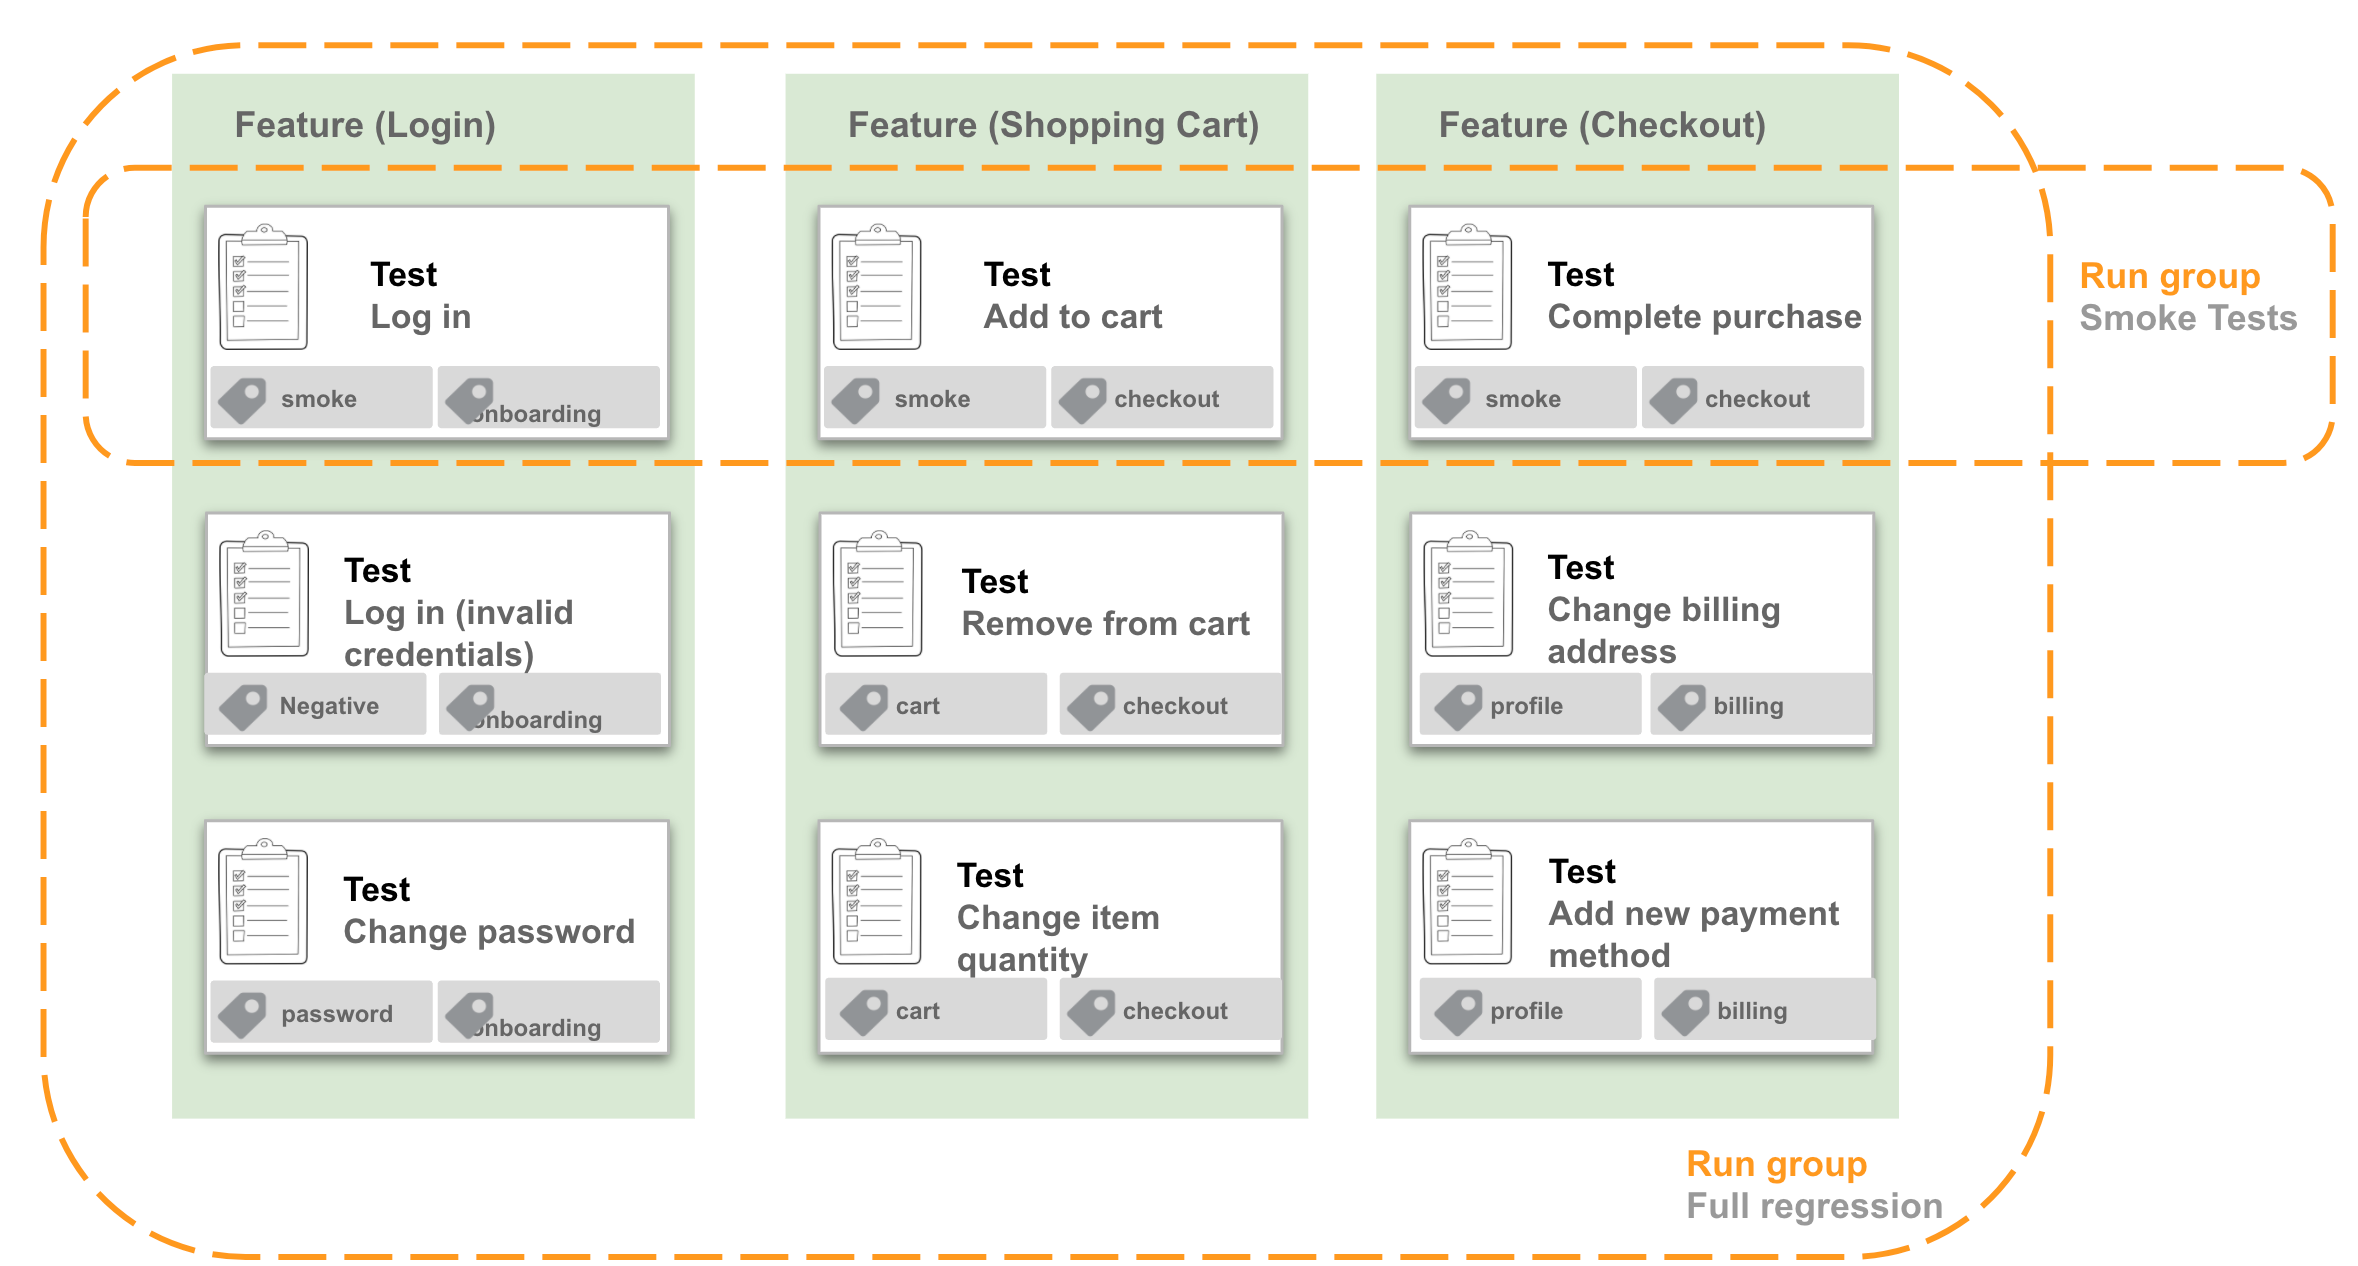 Tests in a feature vs. run group.